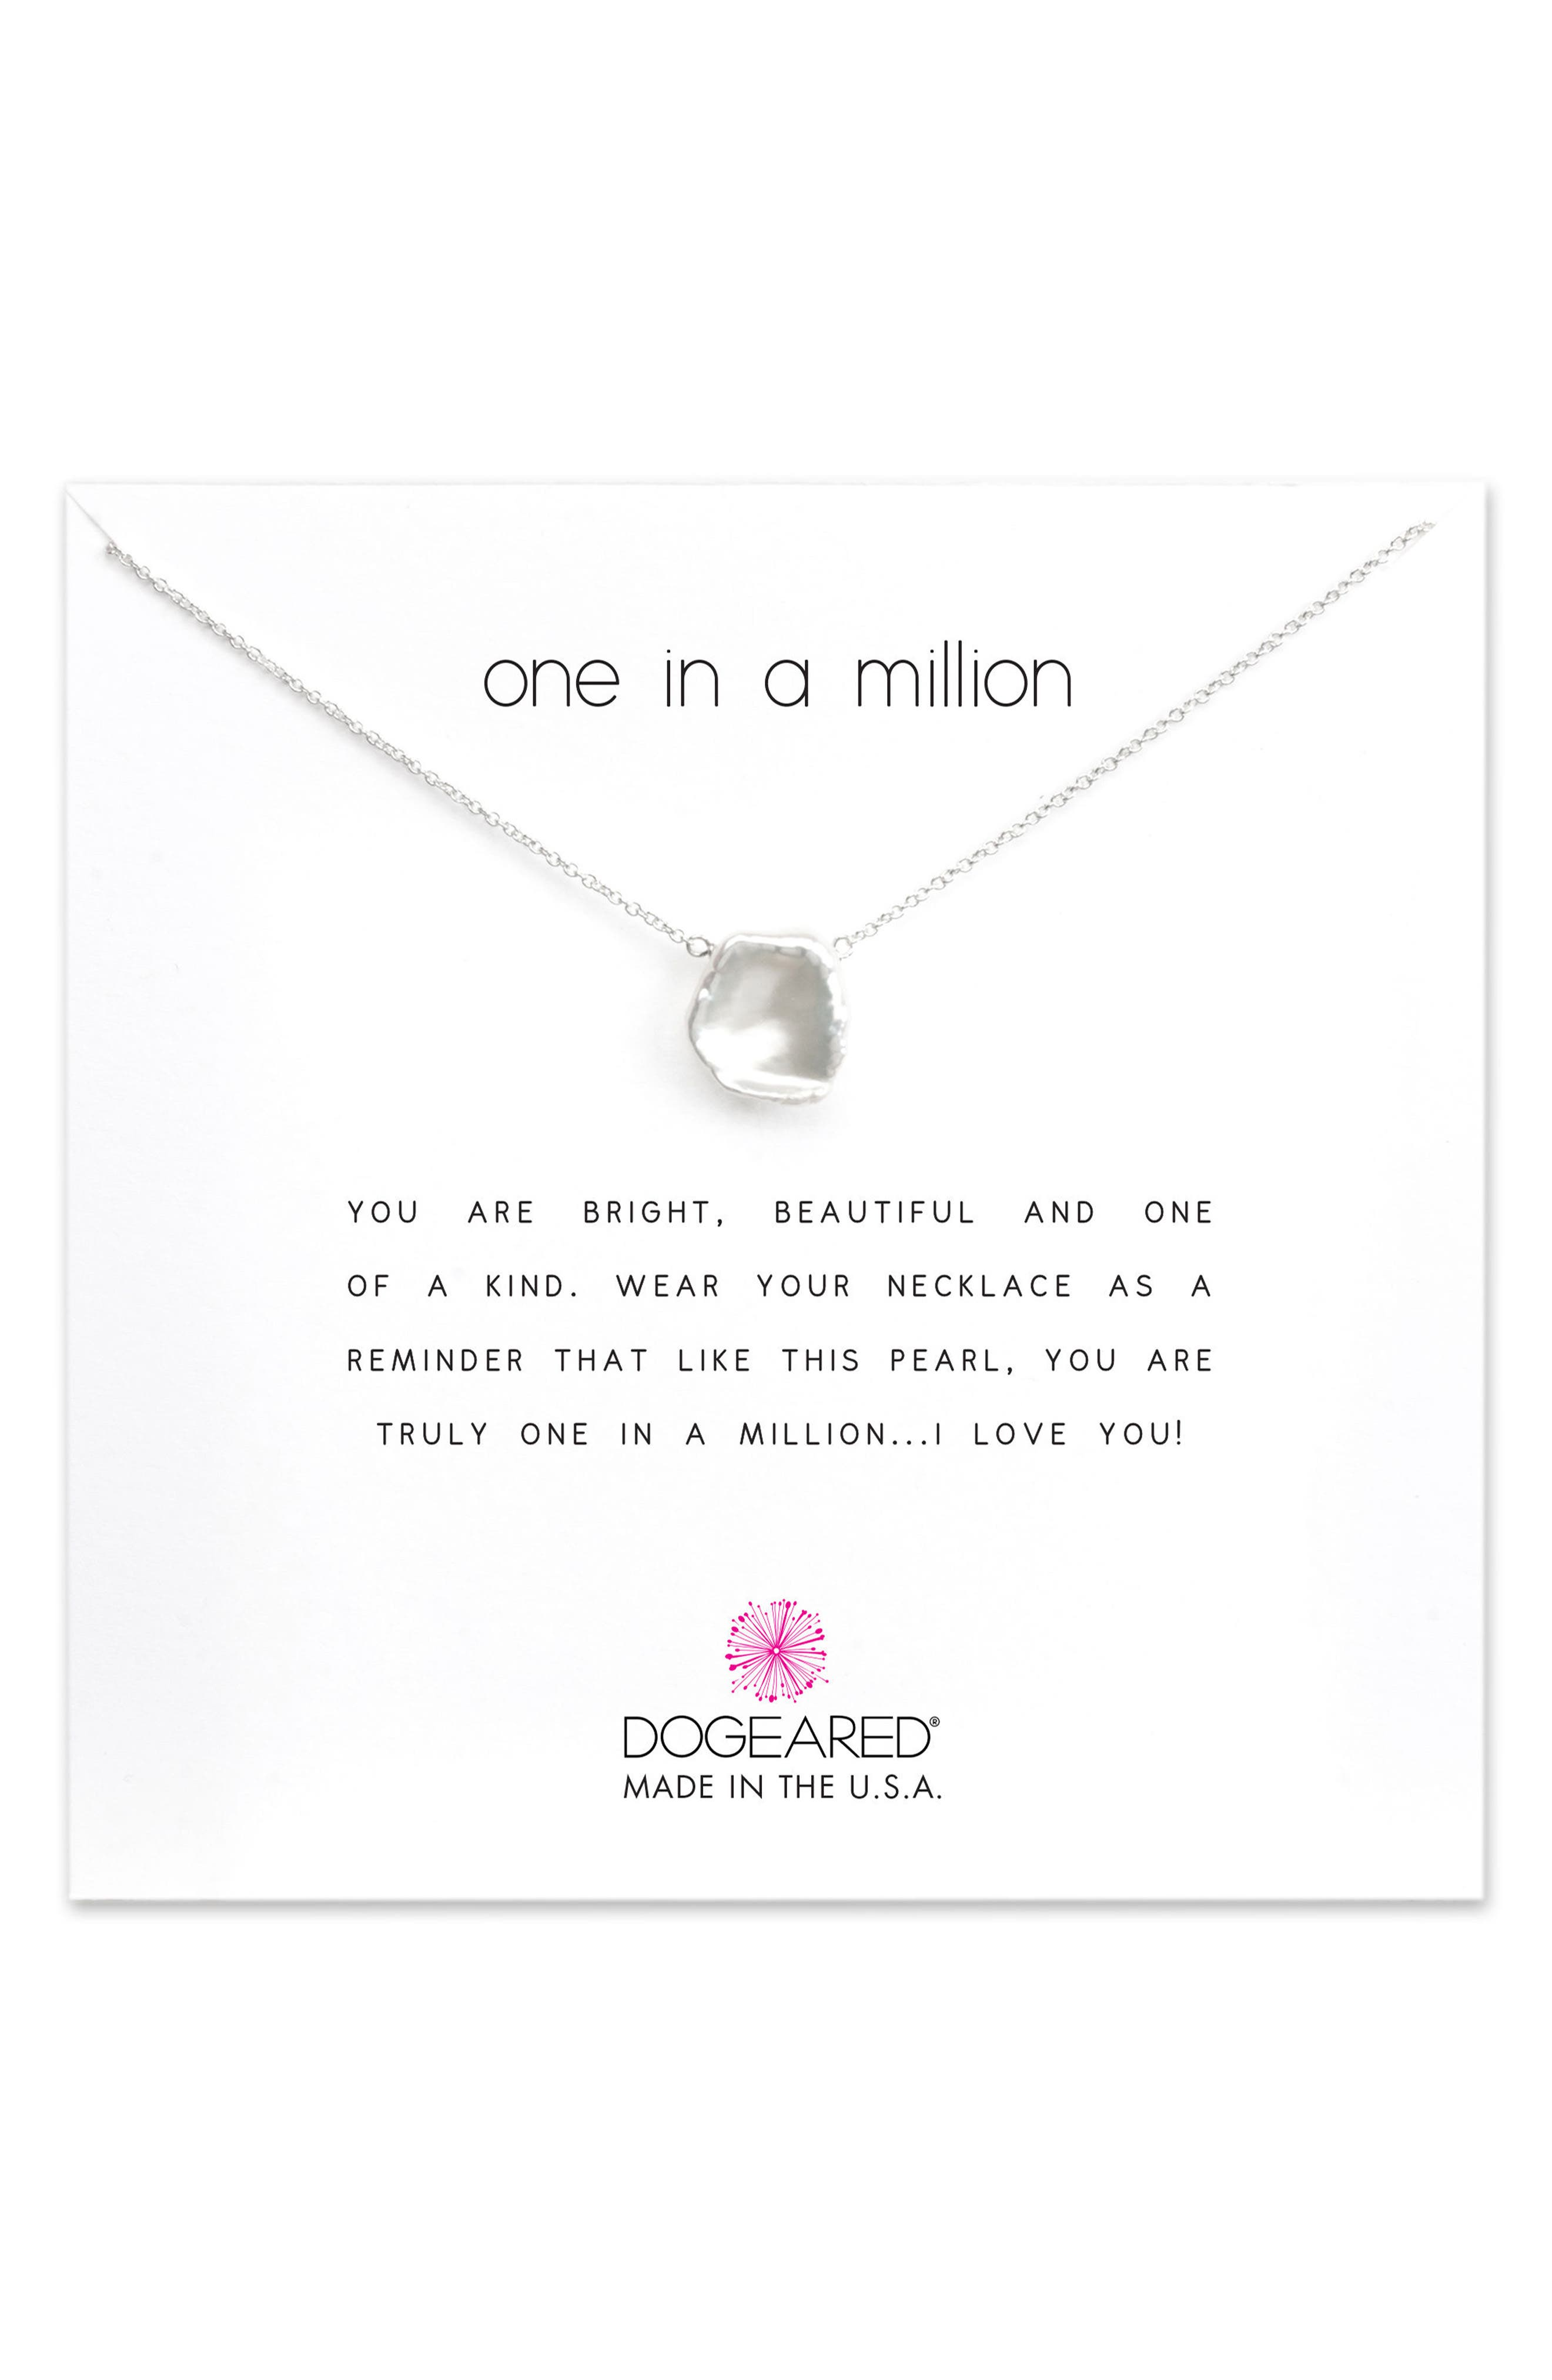 DOGEARED Reminder - One in a Million Keshi Pearl Pendant Necklace